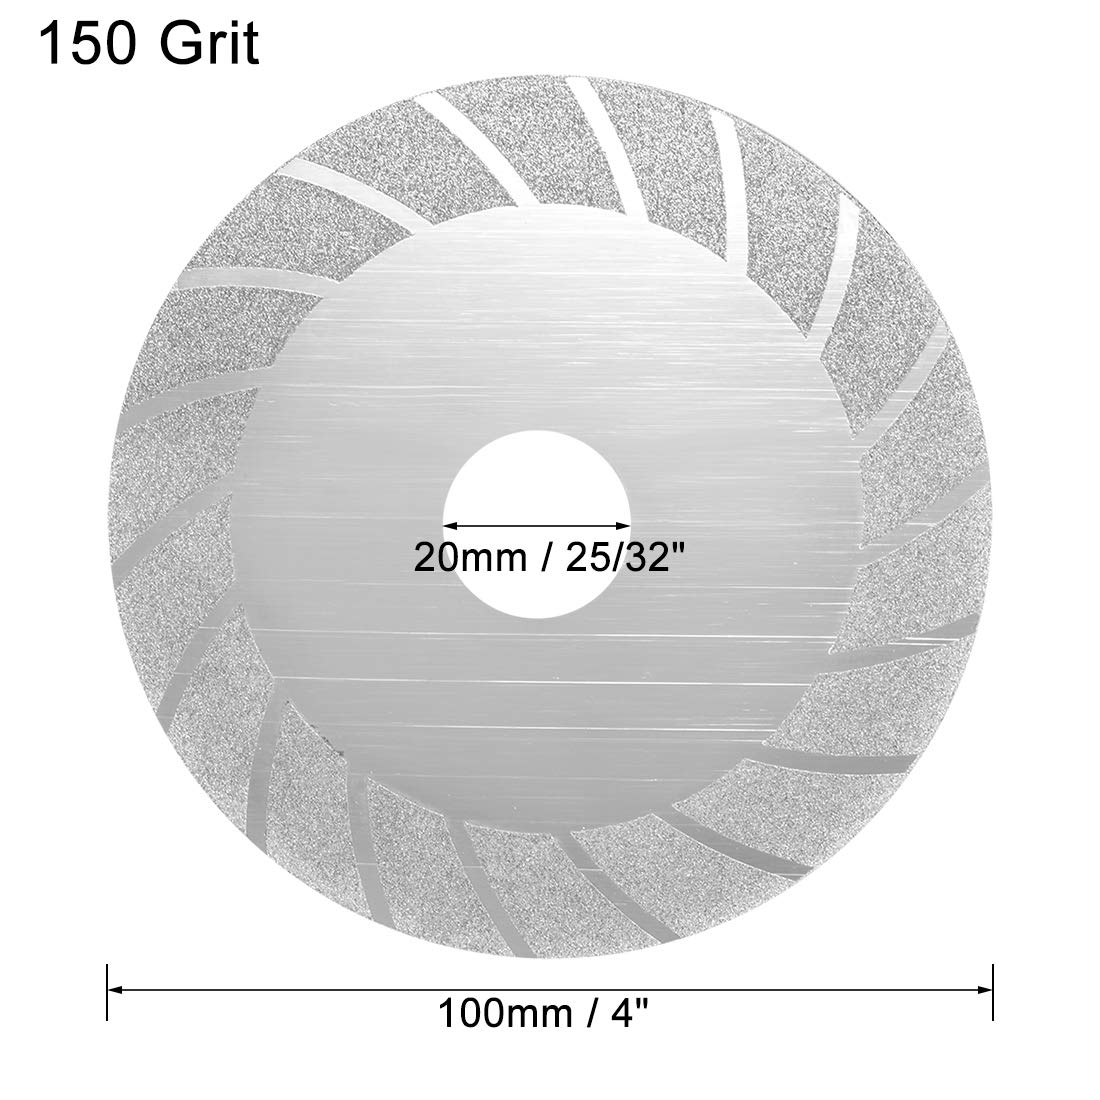 sourcingmap Diamond Grinding Disc Grinding Discs Power Tool Accessories 4 inch Stone Grinding Wheel 150 Grit for Angle Grinder